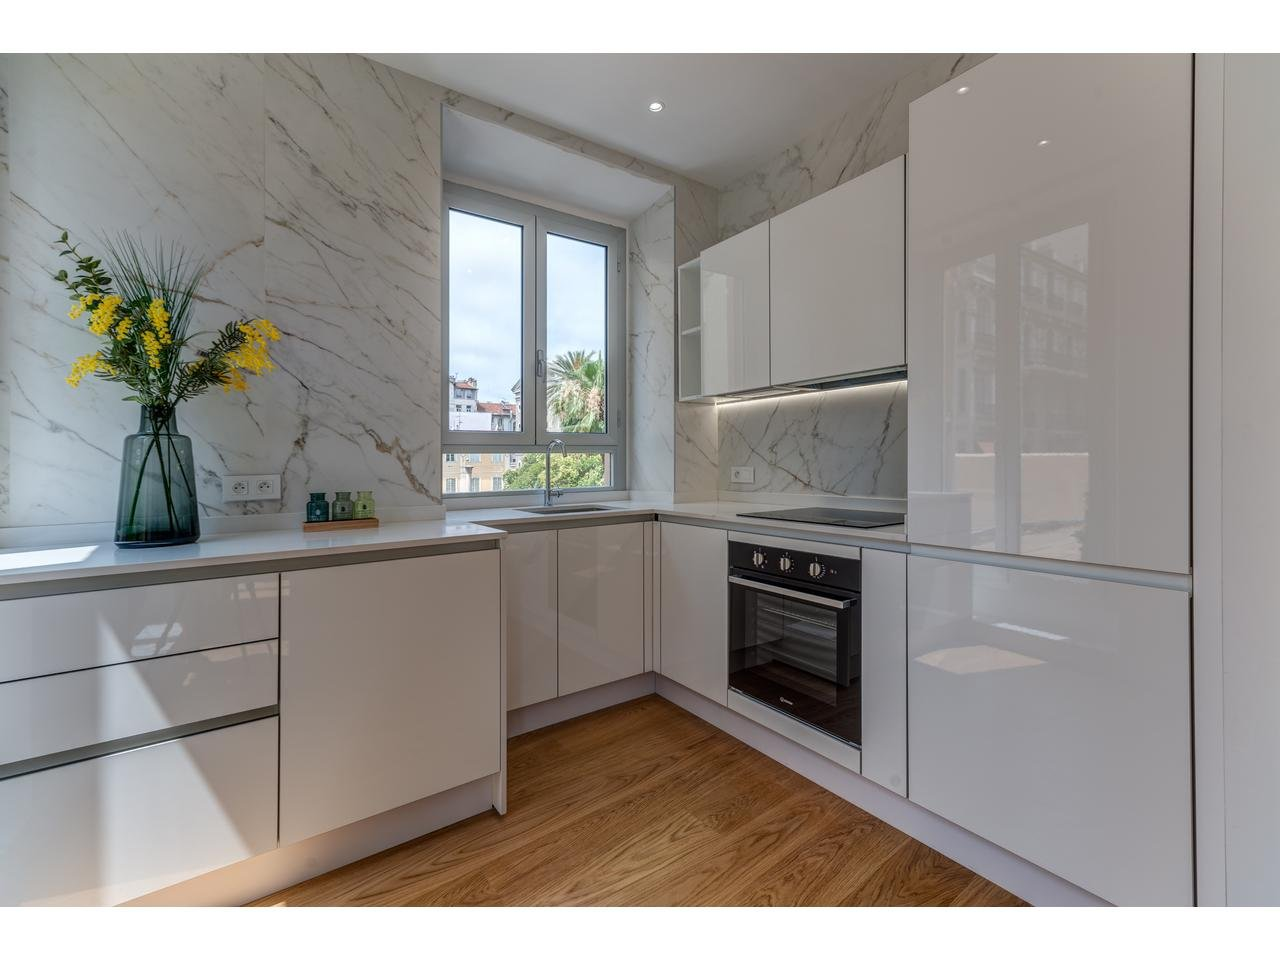 Appartement  3 Rooms 79m2  for sale   785000 €